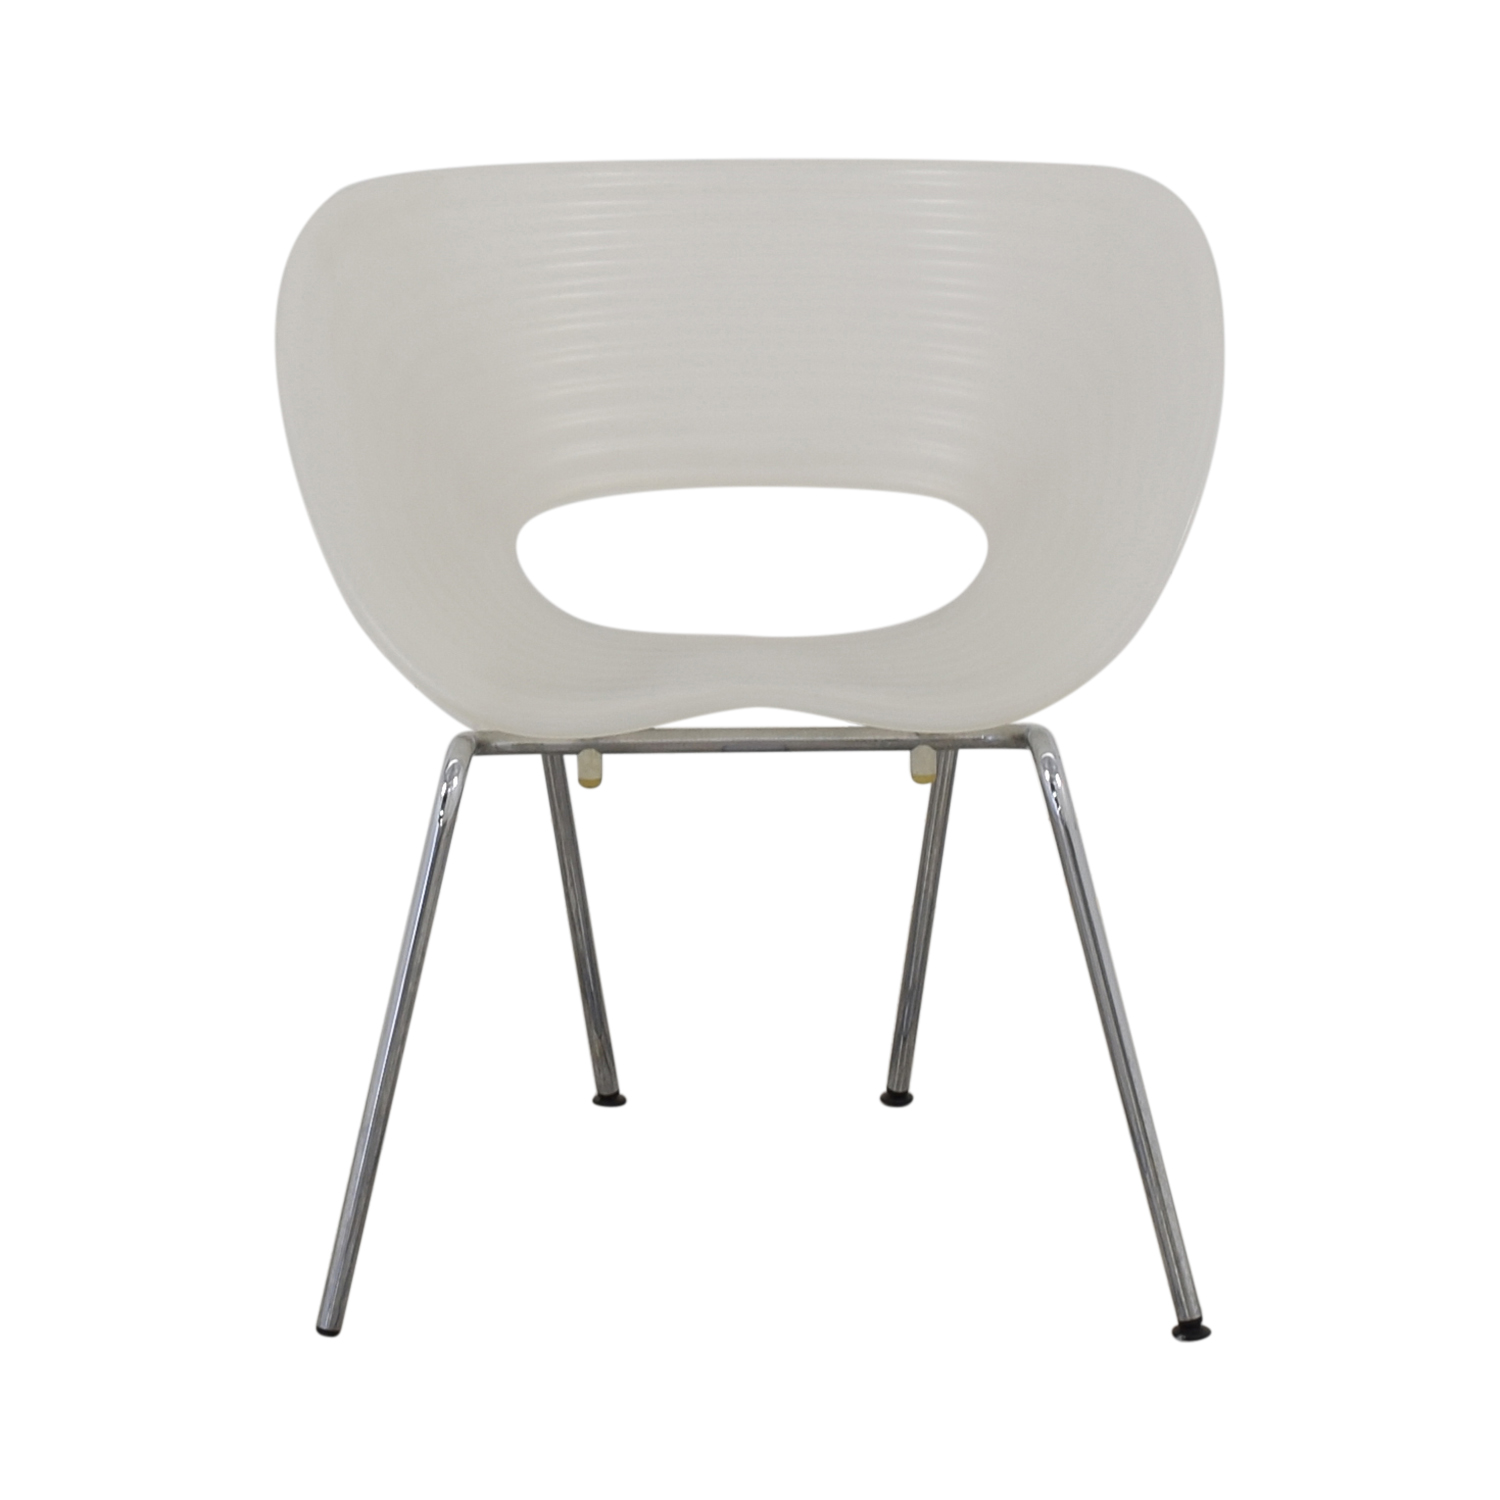 Vitra Vitra Ron Arad T. Vac Chair dimensions